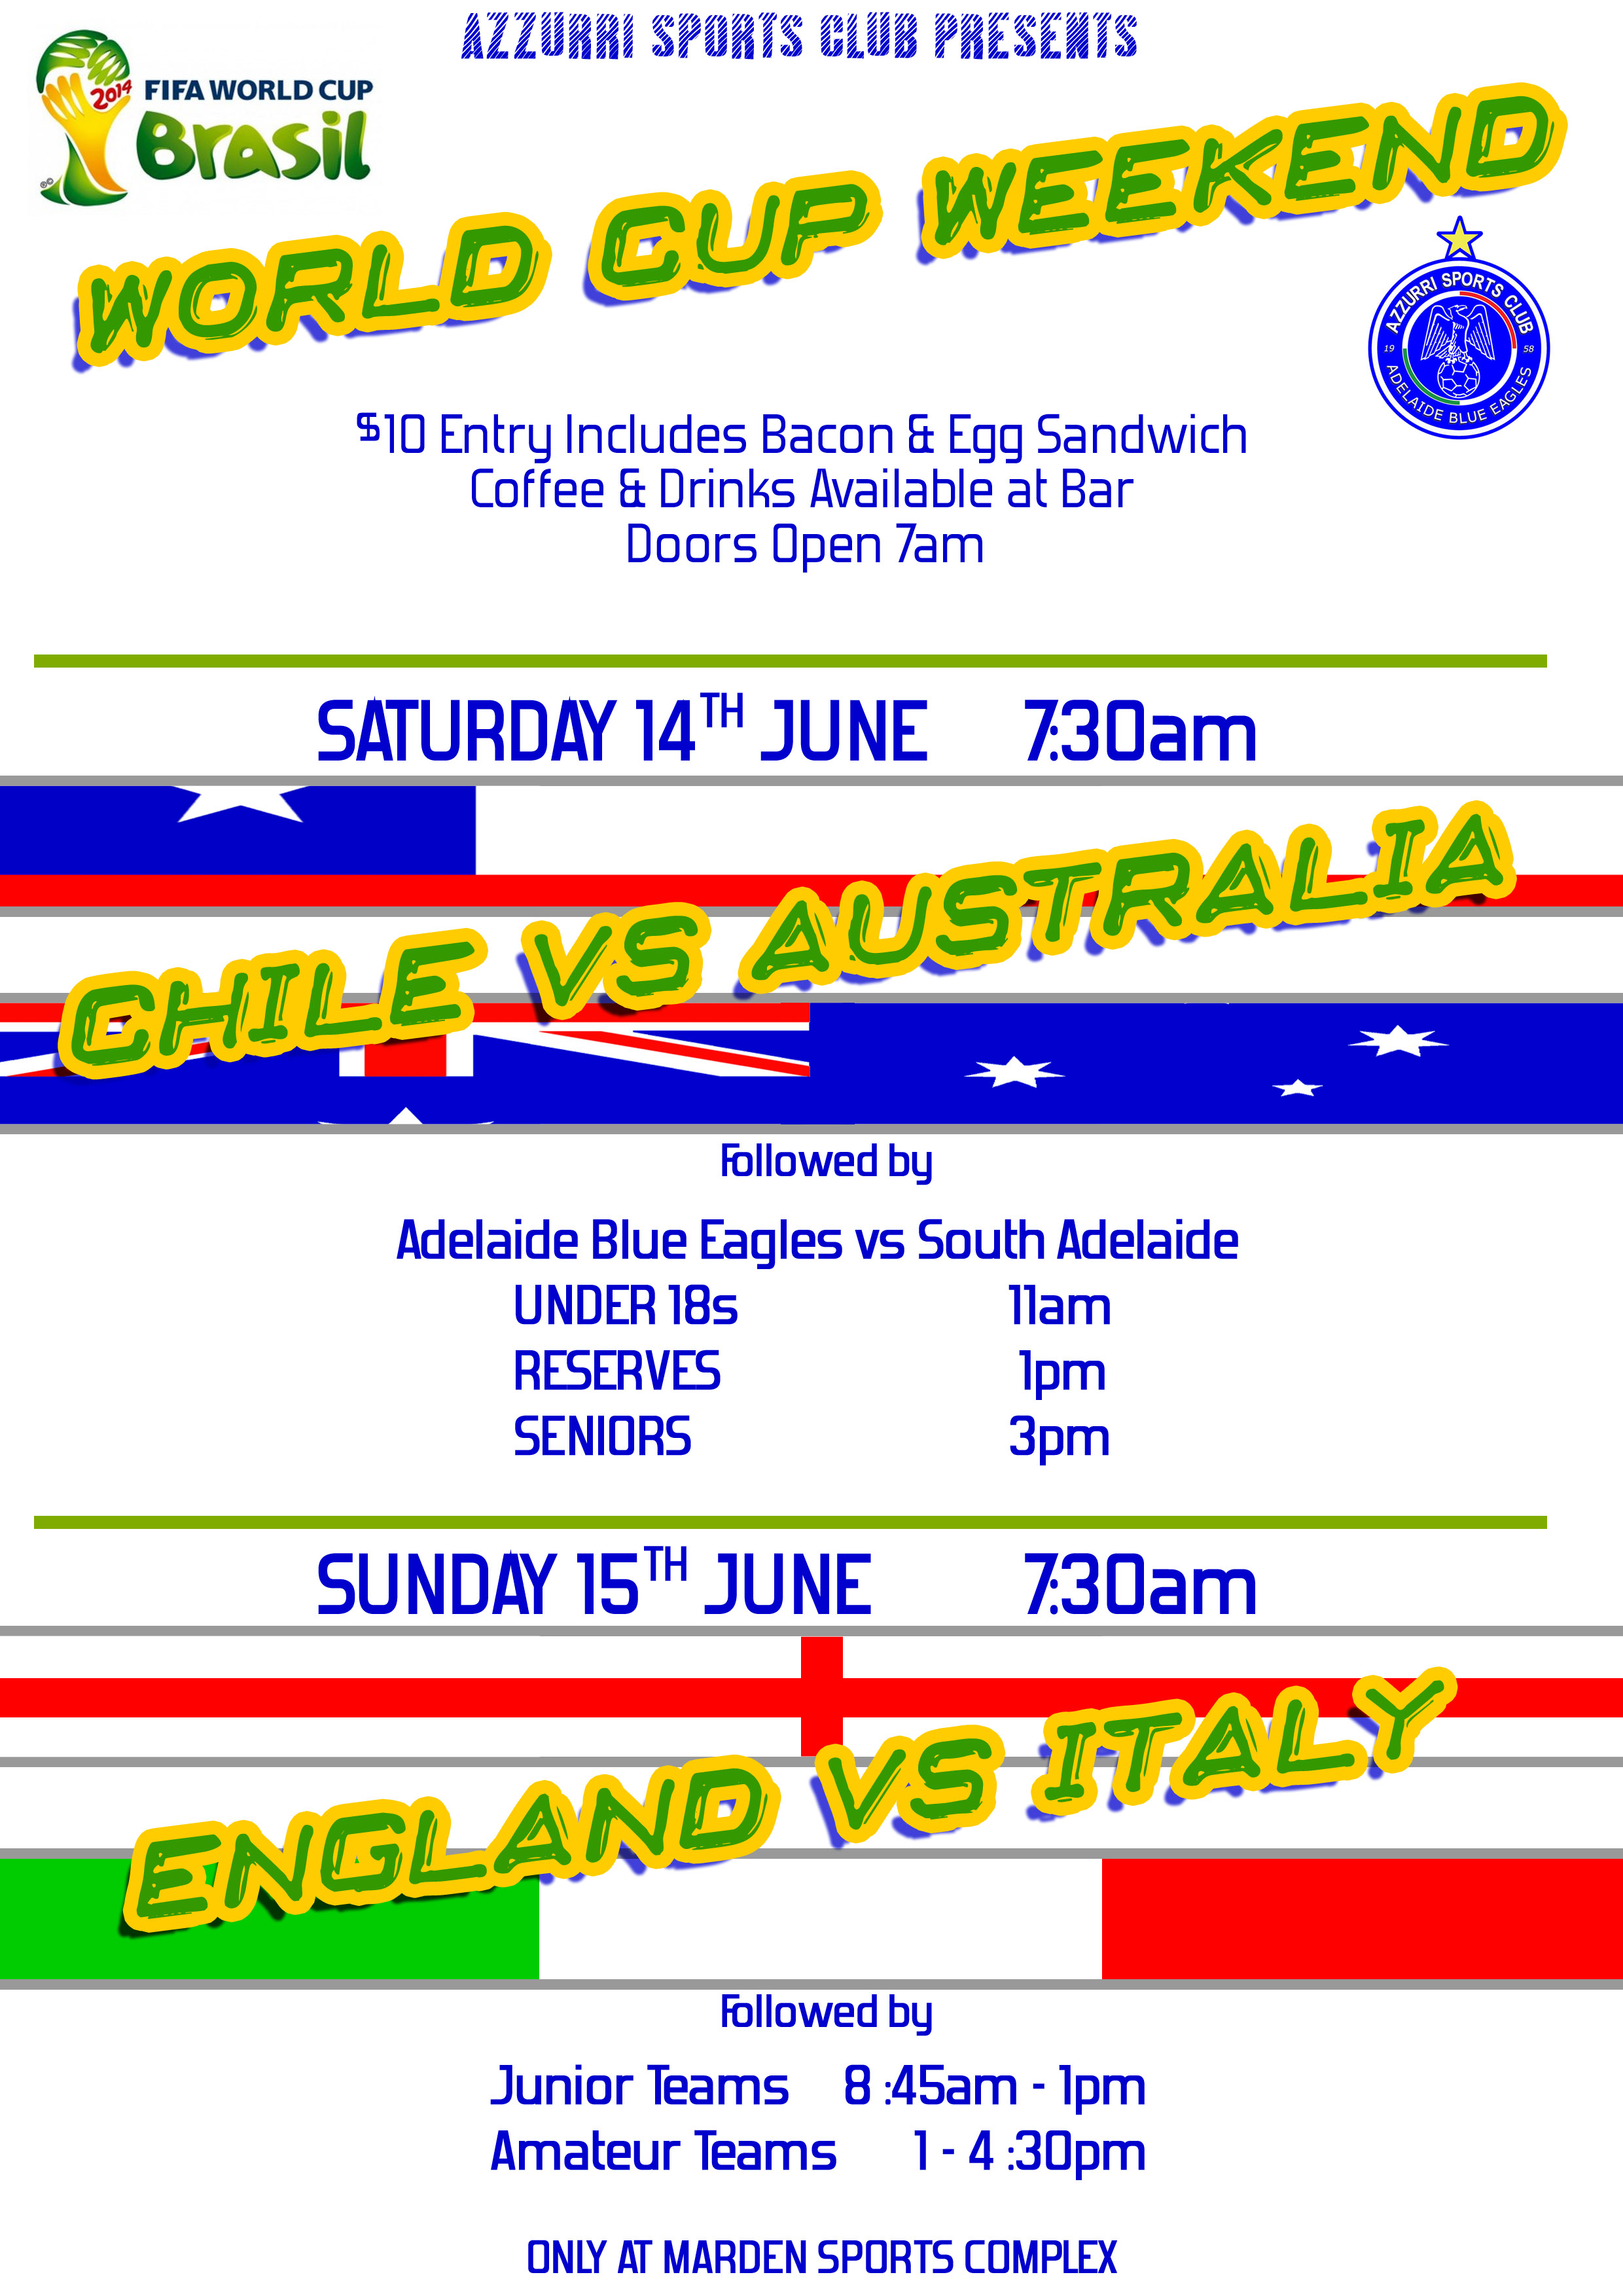 2014 World Cup Weekend